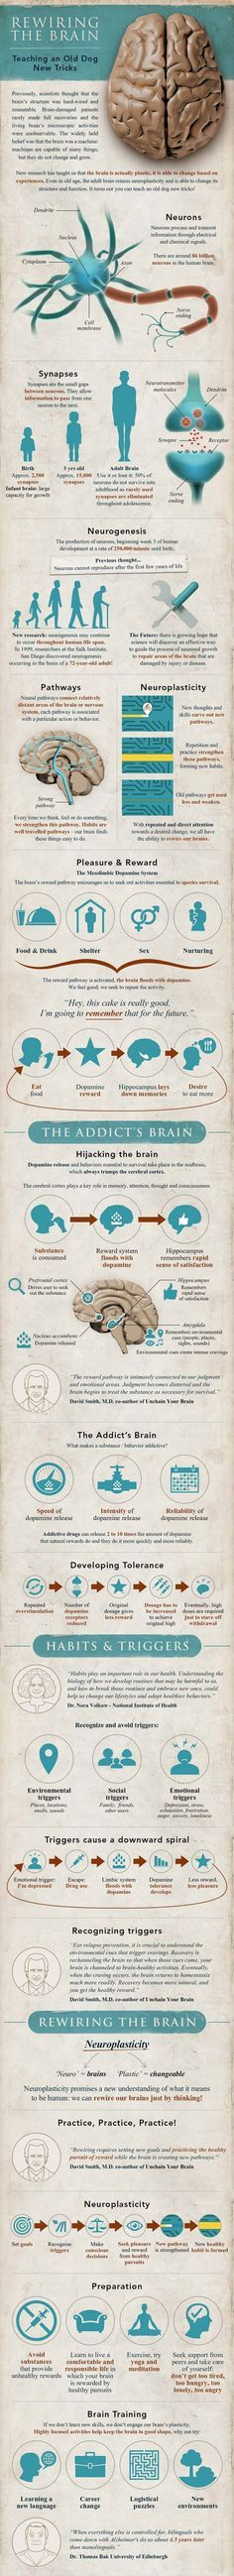 This Nifty Infographic is a Great Introduction to Neuroplasticity and Cognitive Therapy   Did you know you can rewire your brain? Neuroscientific breakthroughs are revealing fascinating new truths about how we can control our brains to create new positive neuropathways